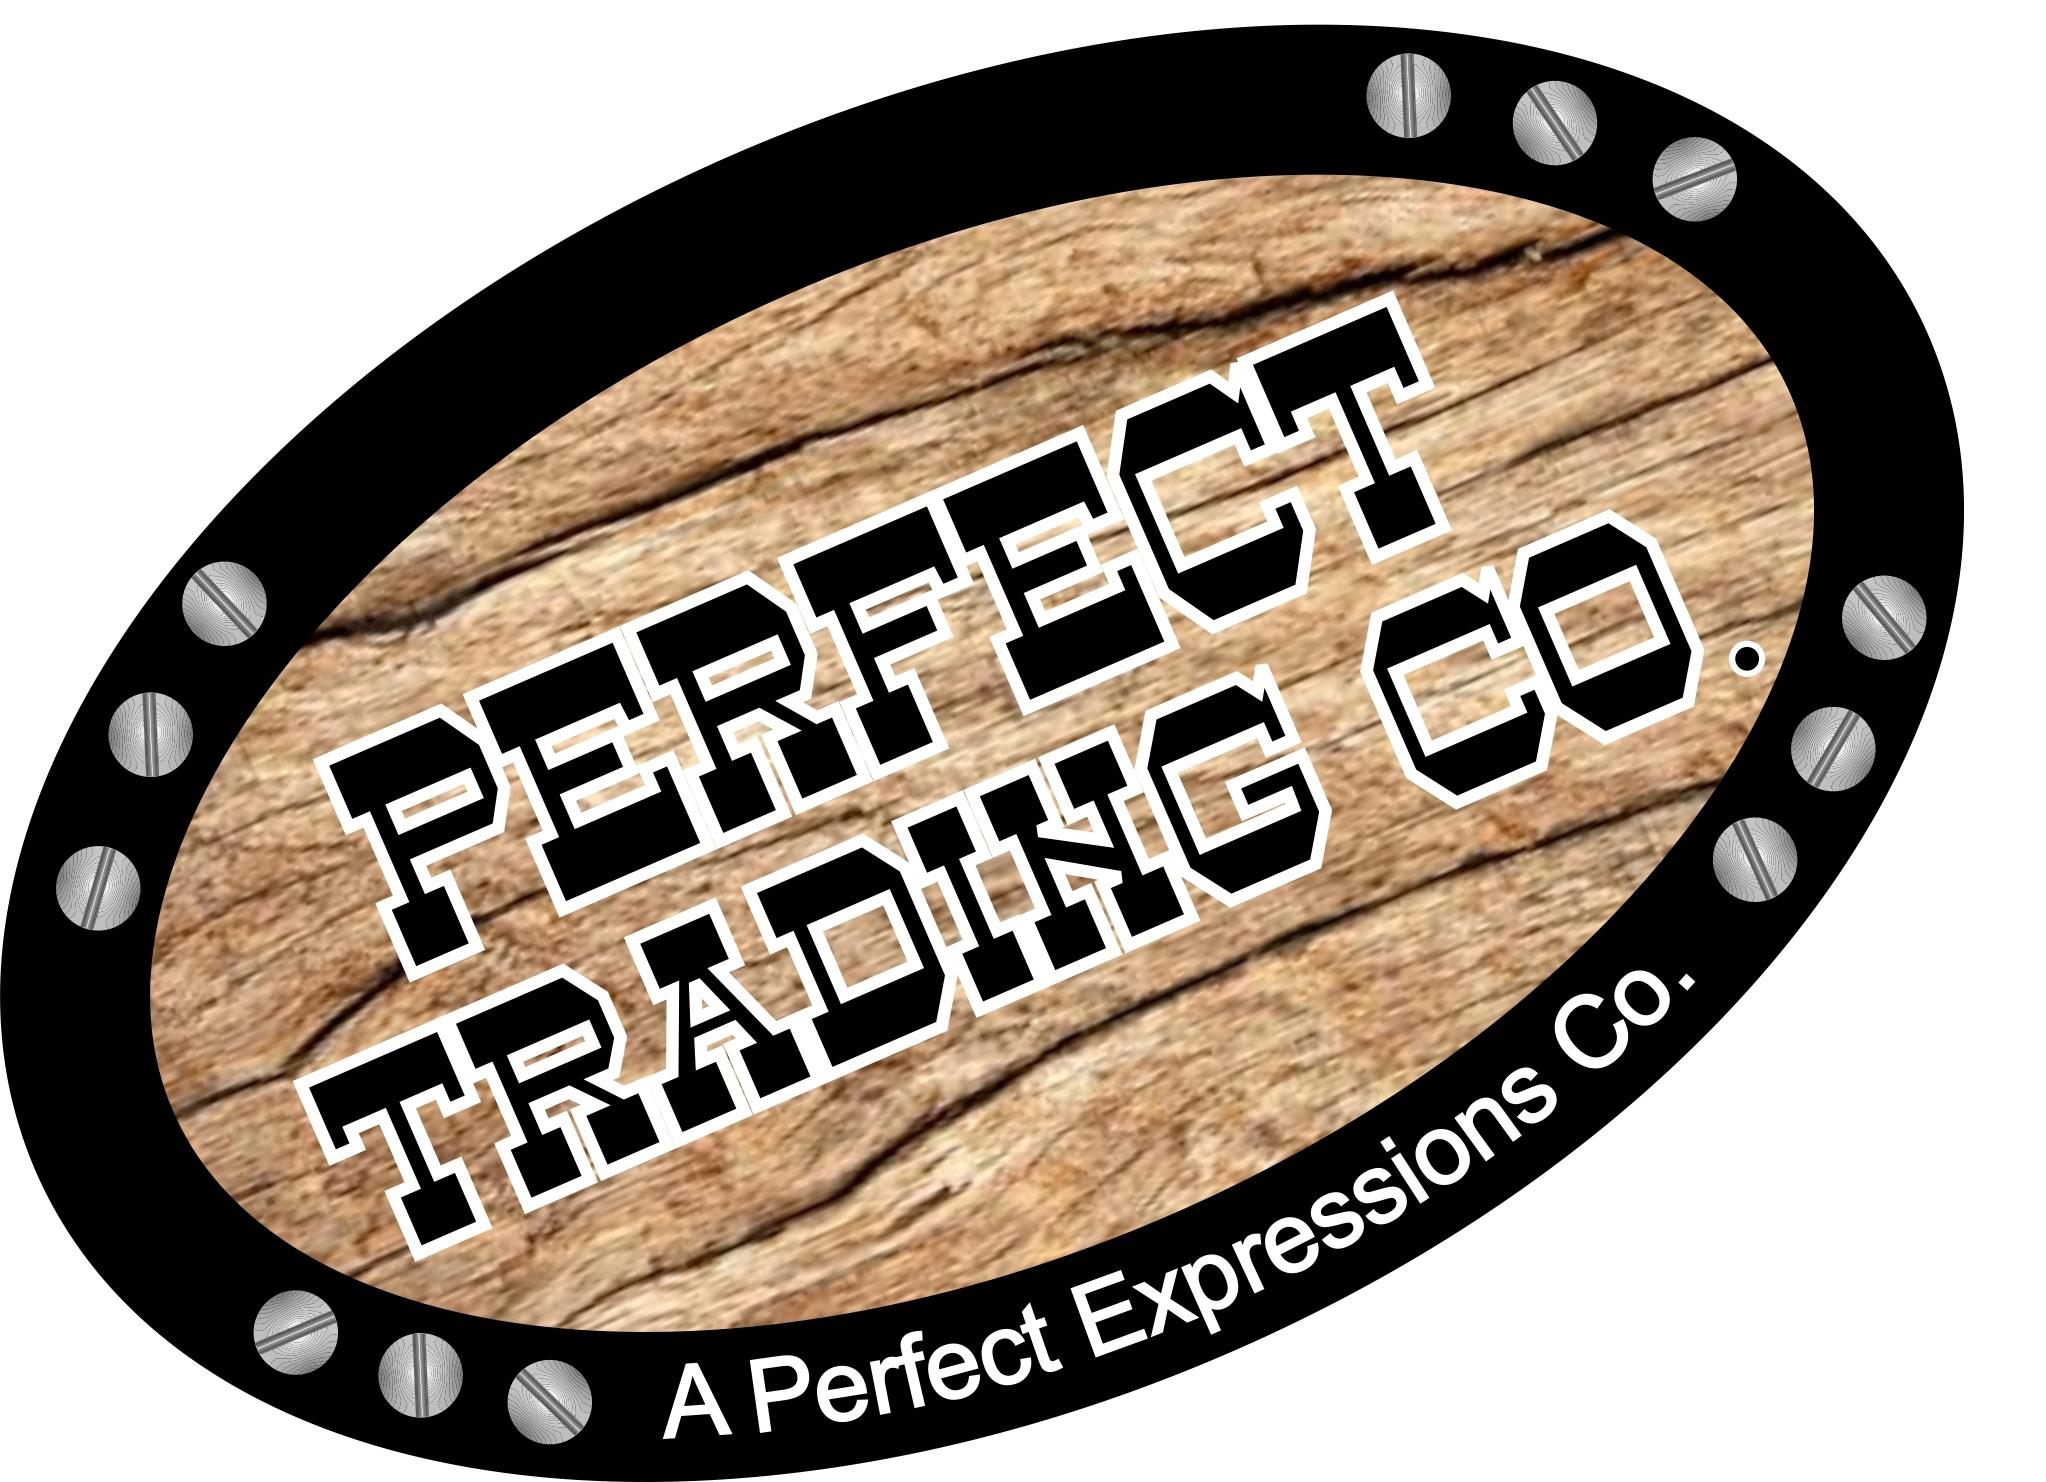 Perfect Trading Co